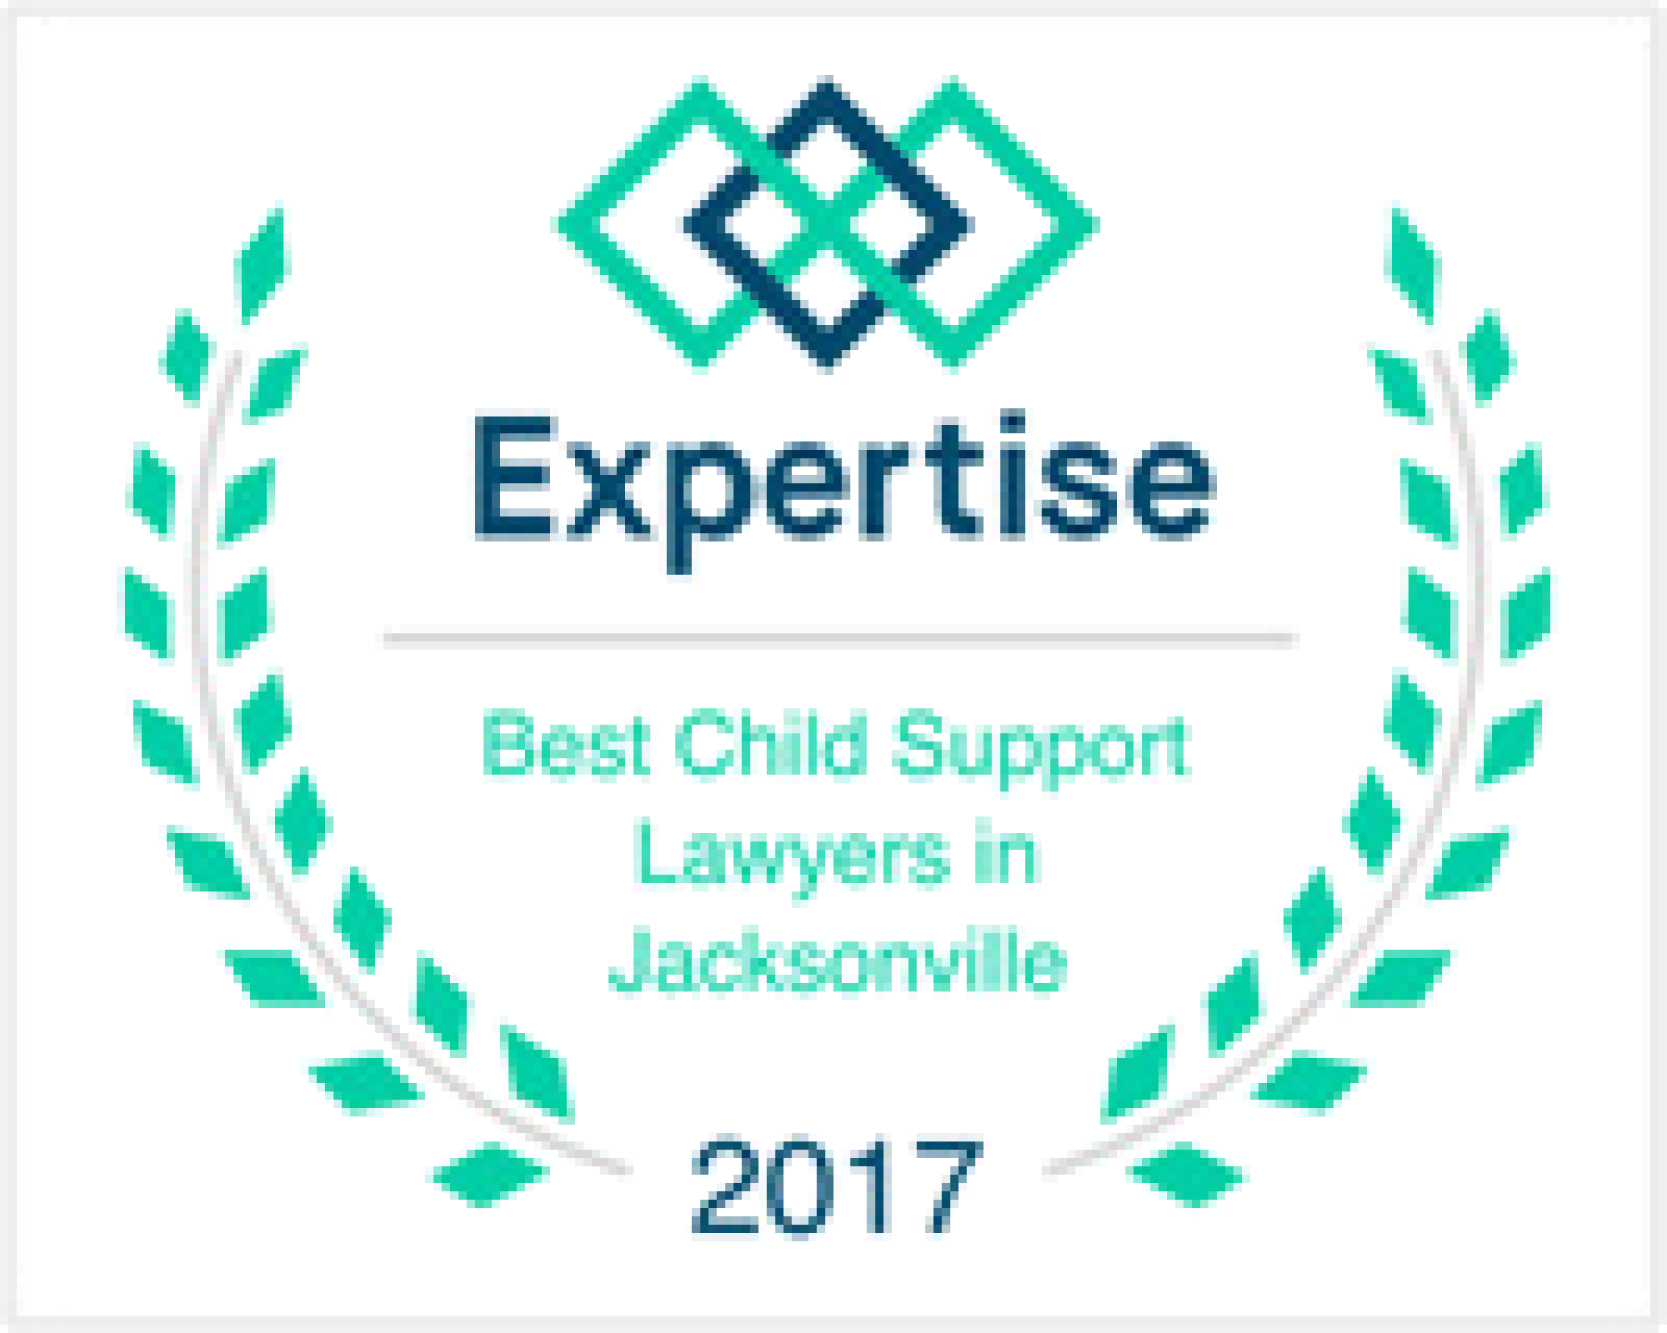 Elizabeth R. Ondriezek, P.A. Family Law Attorneys Attorney Adoption Divorce Juvenile Military Injunctions for Protection Paternity Mediation Name Change Relocation Jacksonville Florida Beach Atlantic Neptune Orange Park Doctors Inlet Fernandina Ponte Vedra Yulee Green Cove Springs Clay County Duval St. Johns Roehrig Child Support